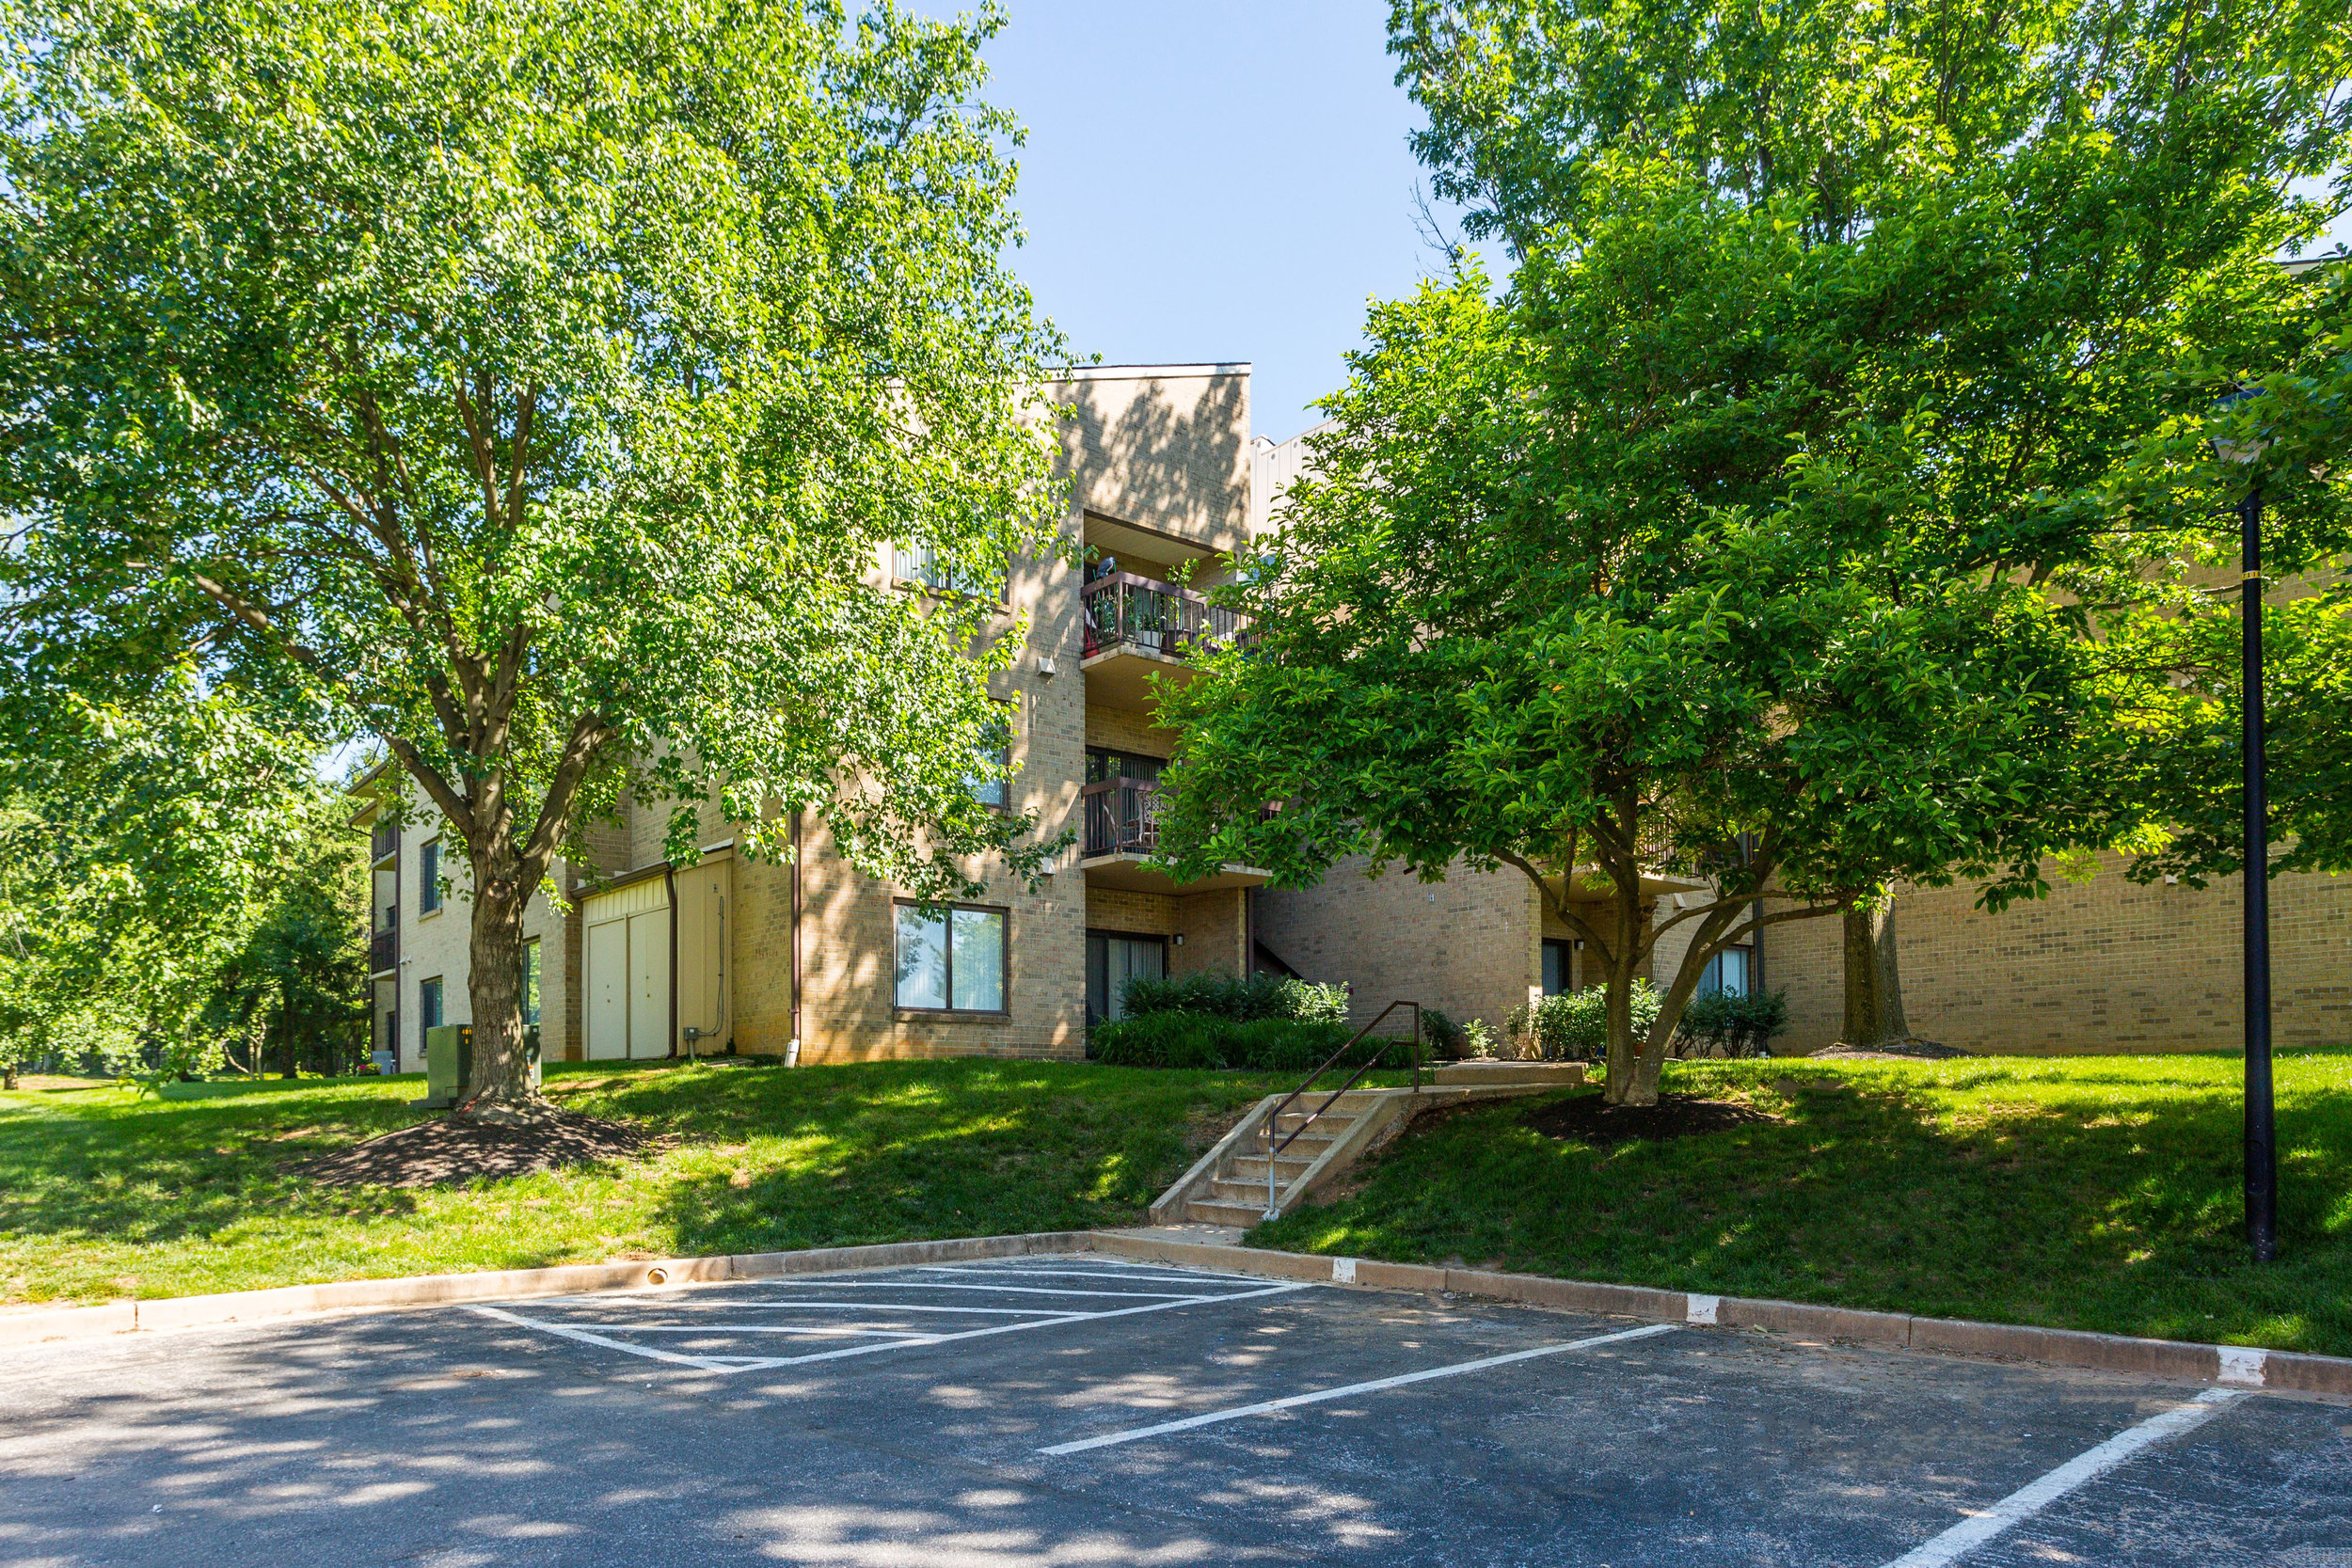 Annen Woods Apartment Community in Pikesville, MD